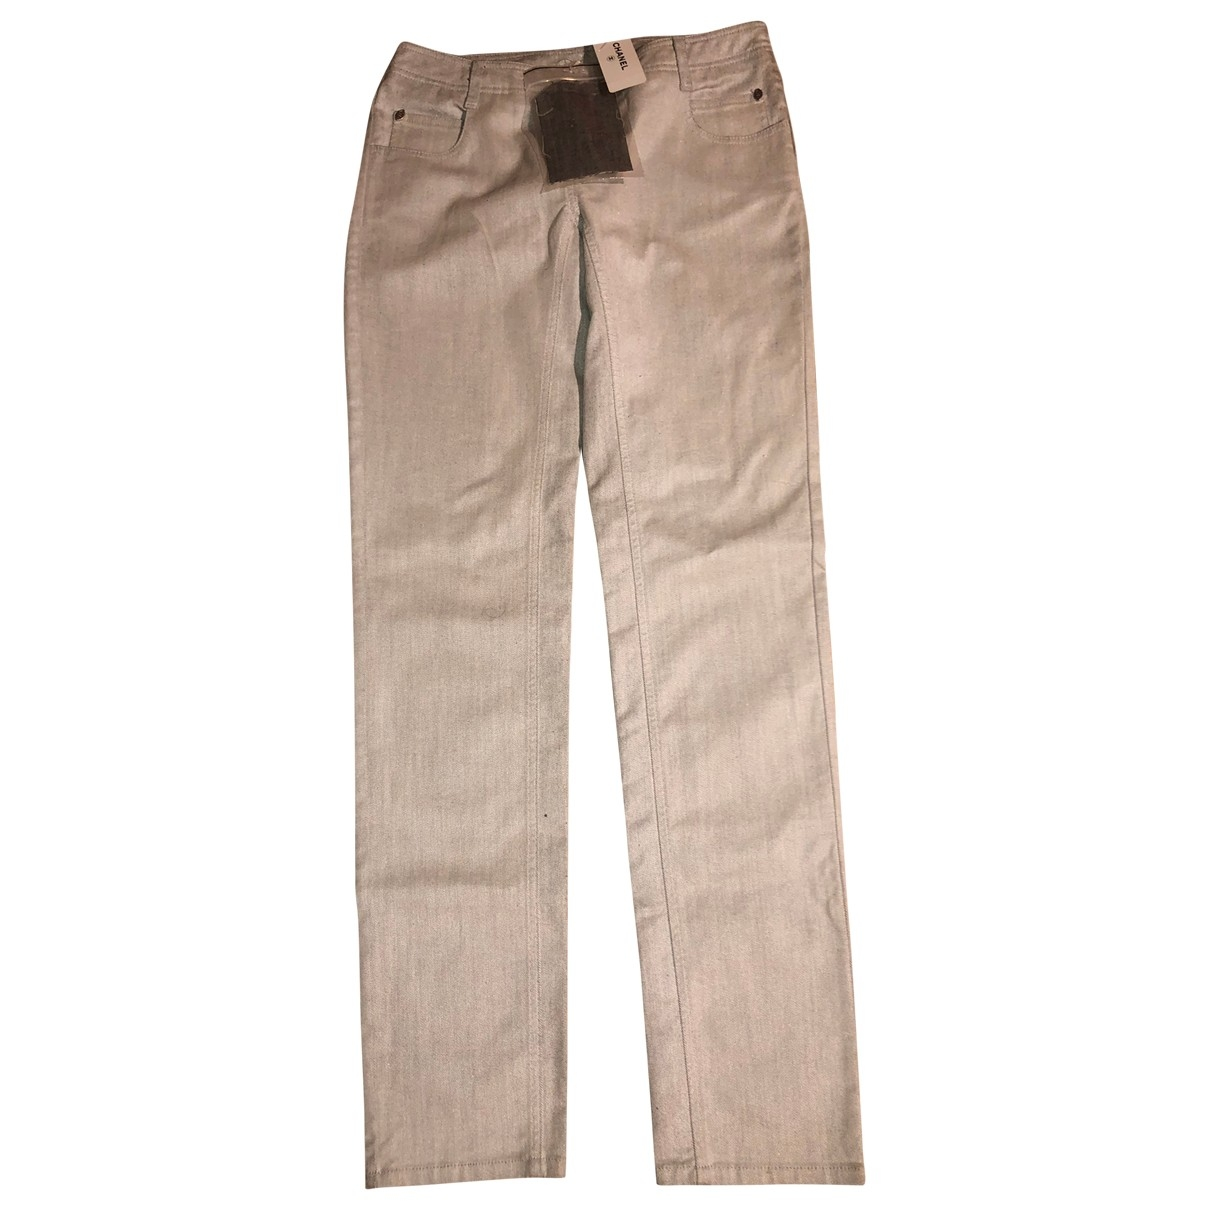 Chanel \N Grey Cotton Jeans for Women 44 FR